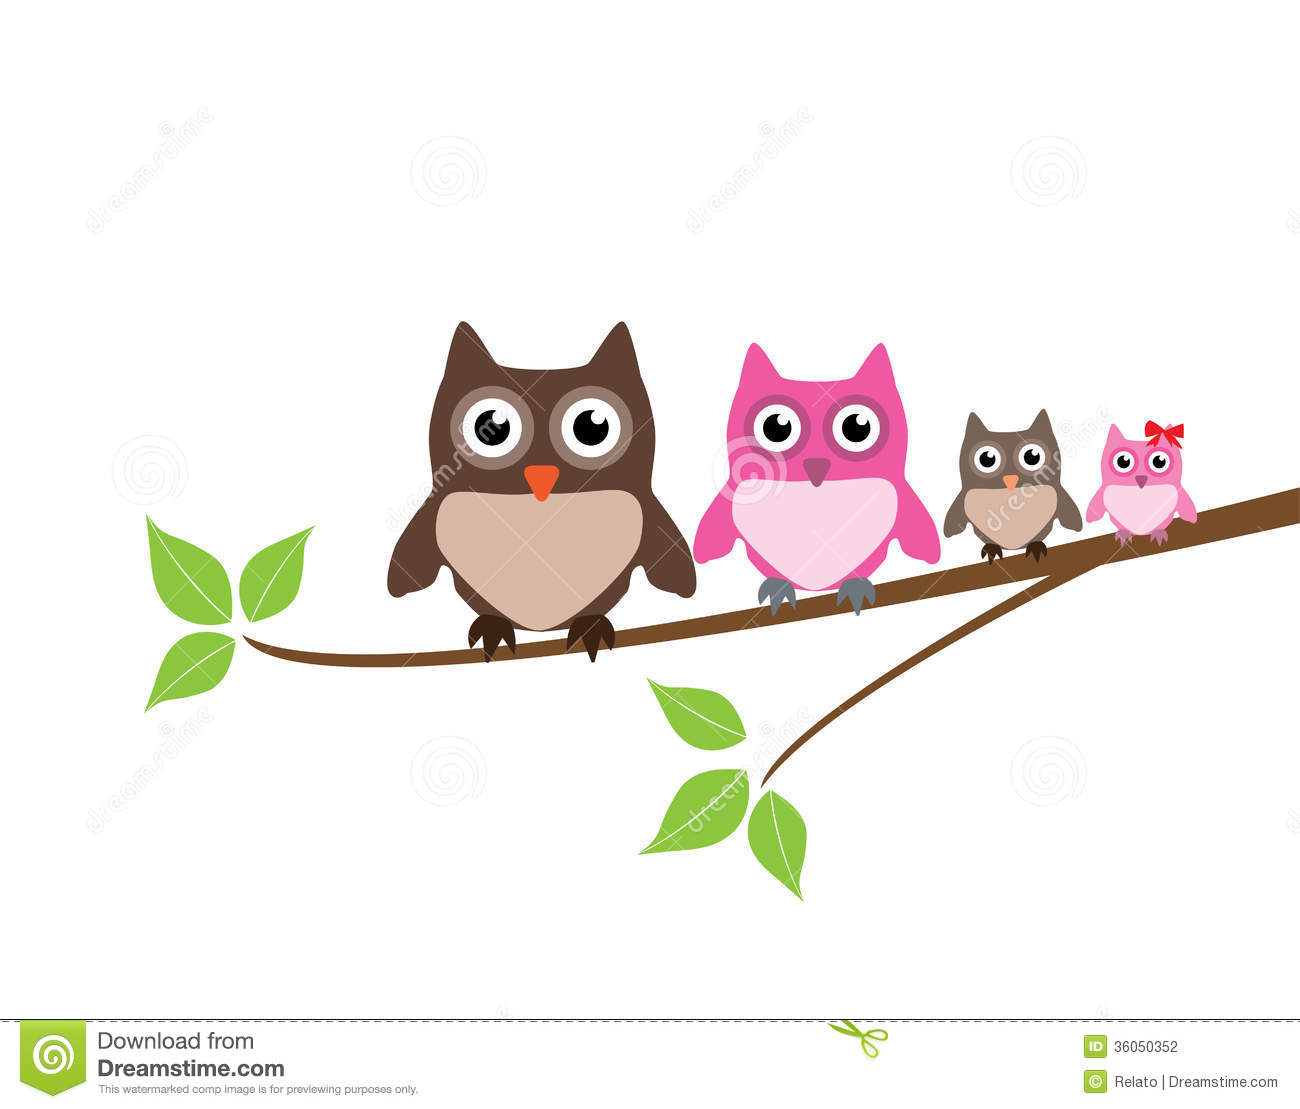 owl family stock vector illustration of wise  cute owl with glasses images clip art Cartoon Owl